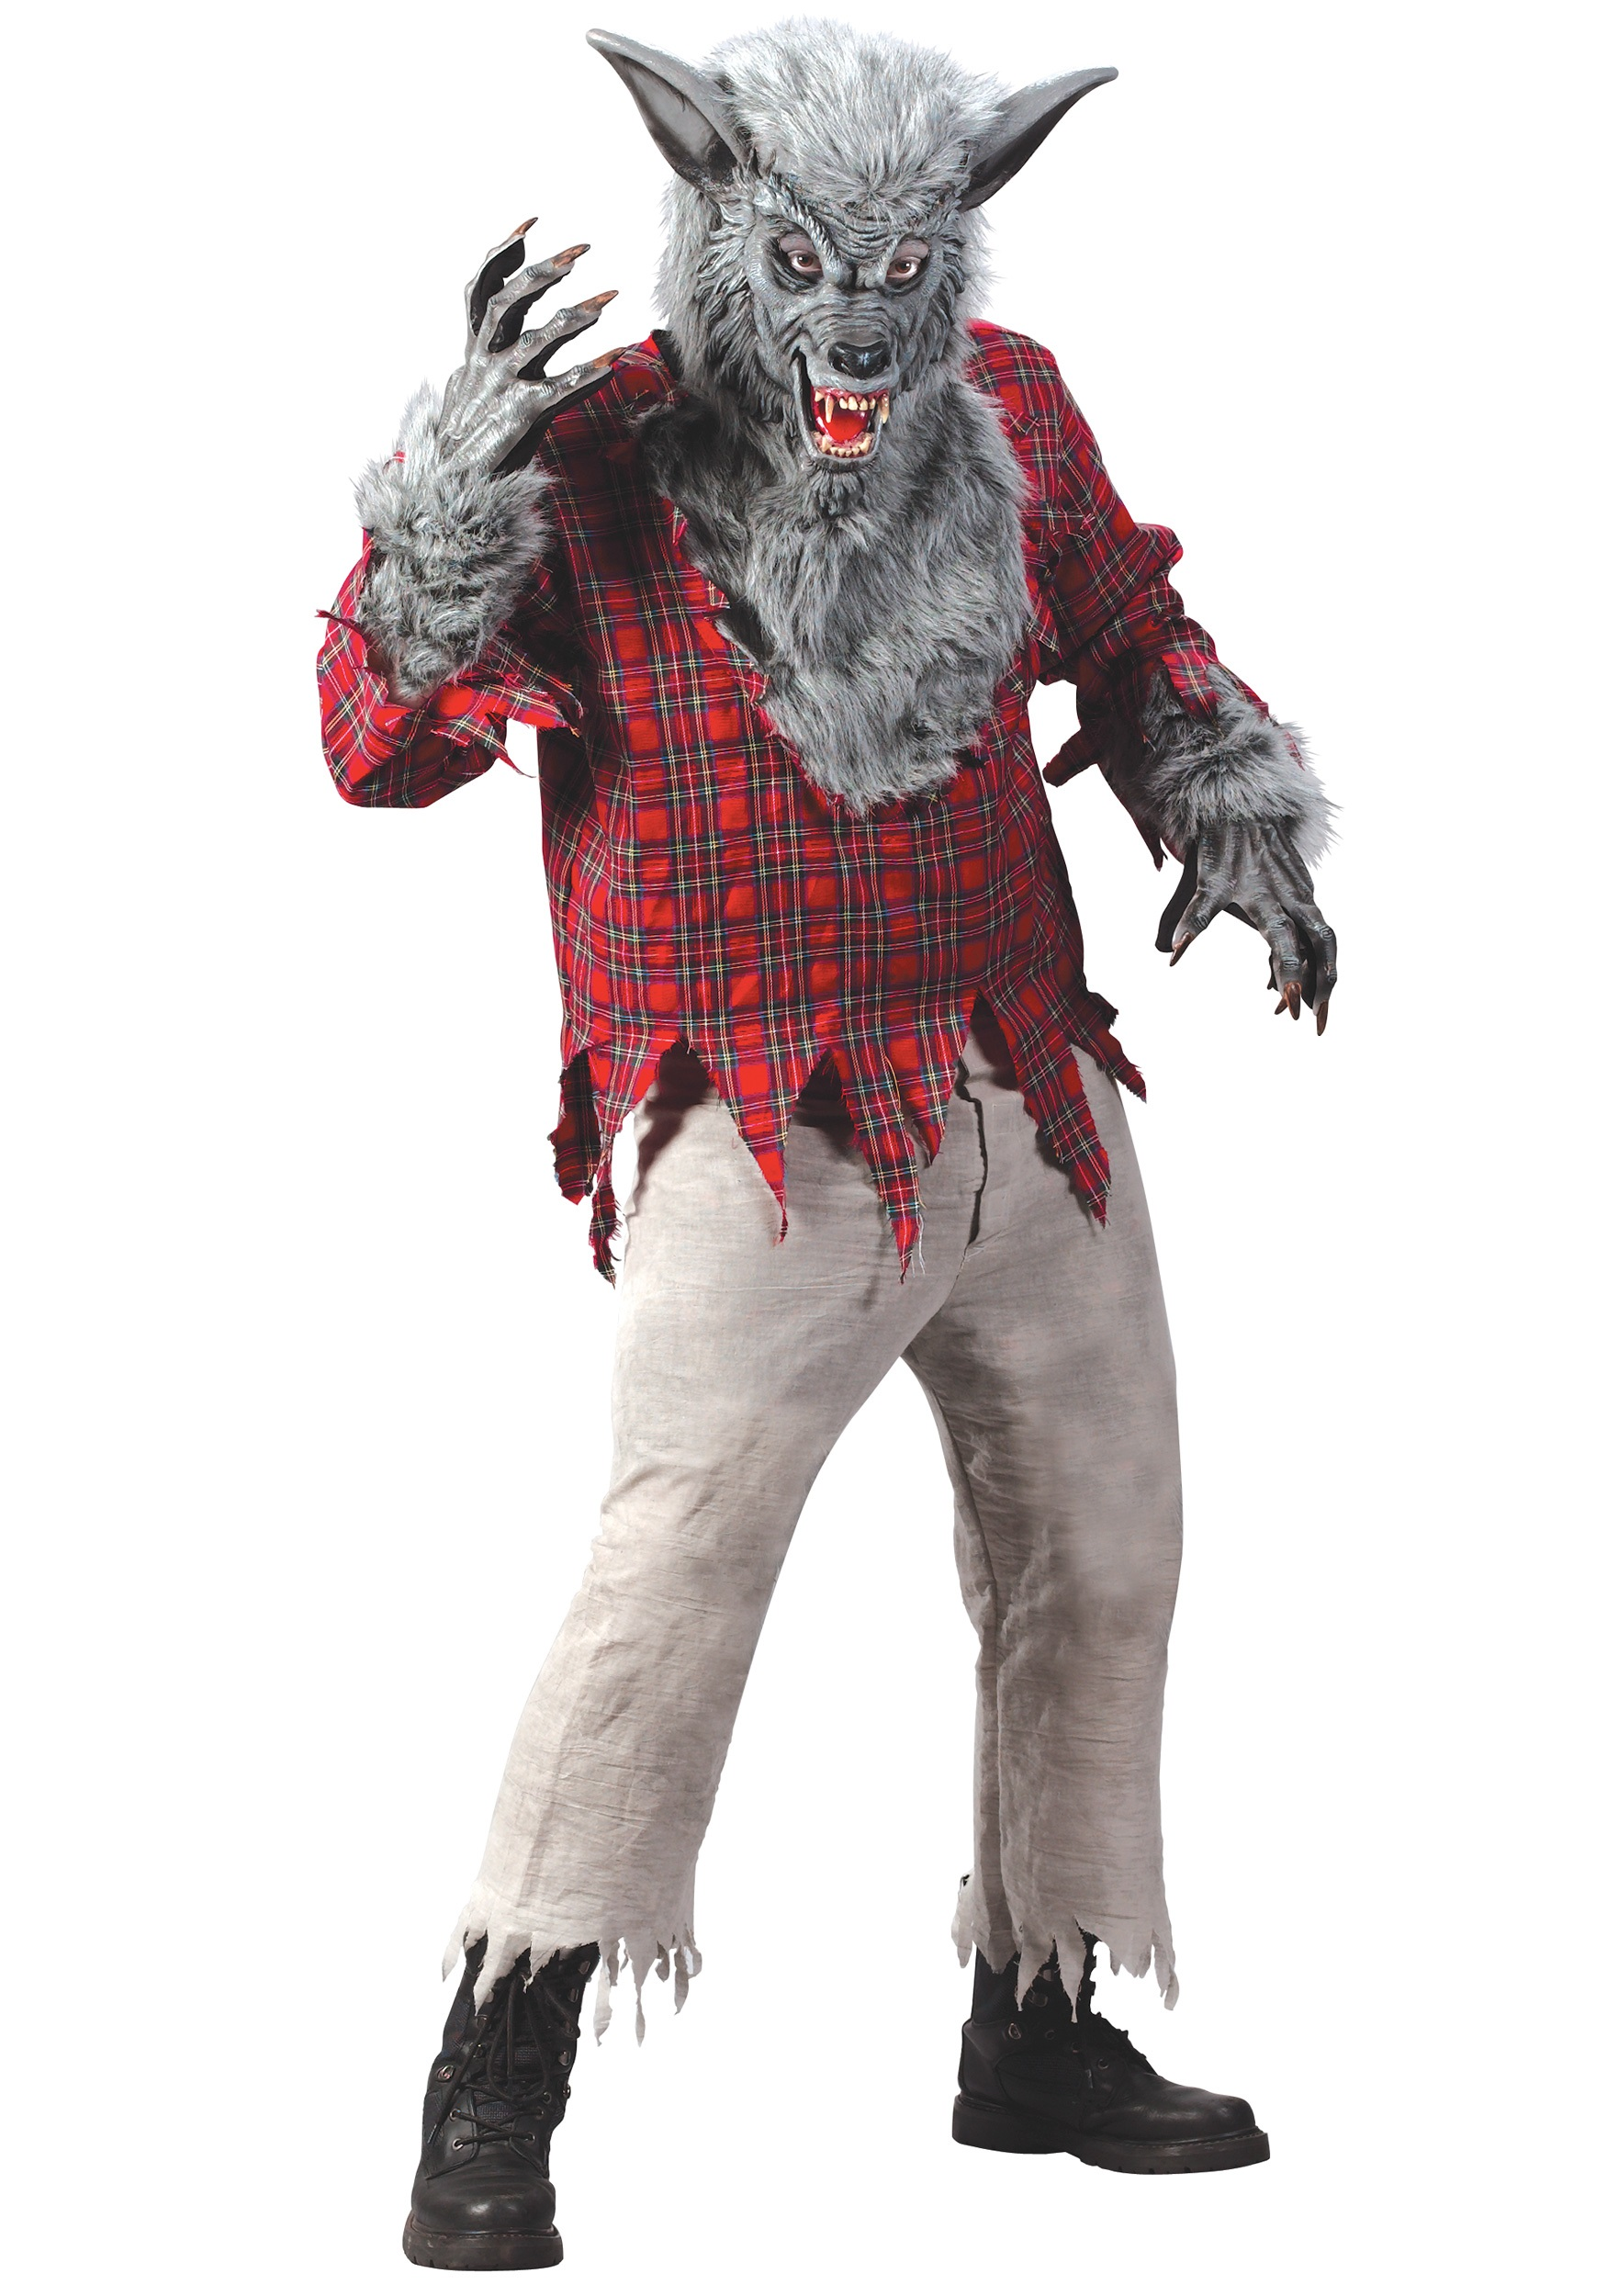 Werewolf Costumes - Adult, Kids Scary Werewolf Costume